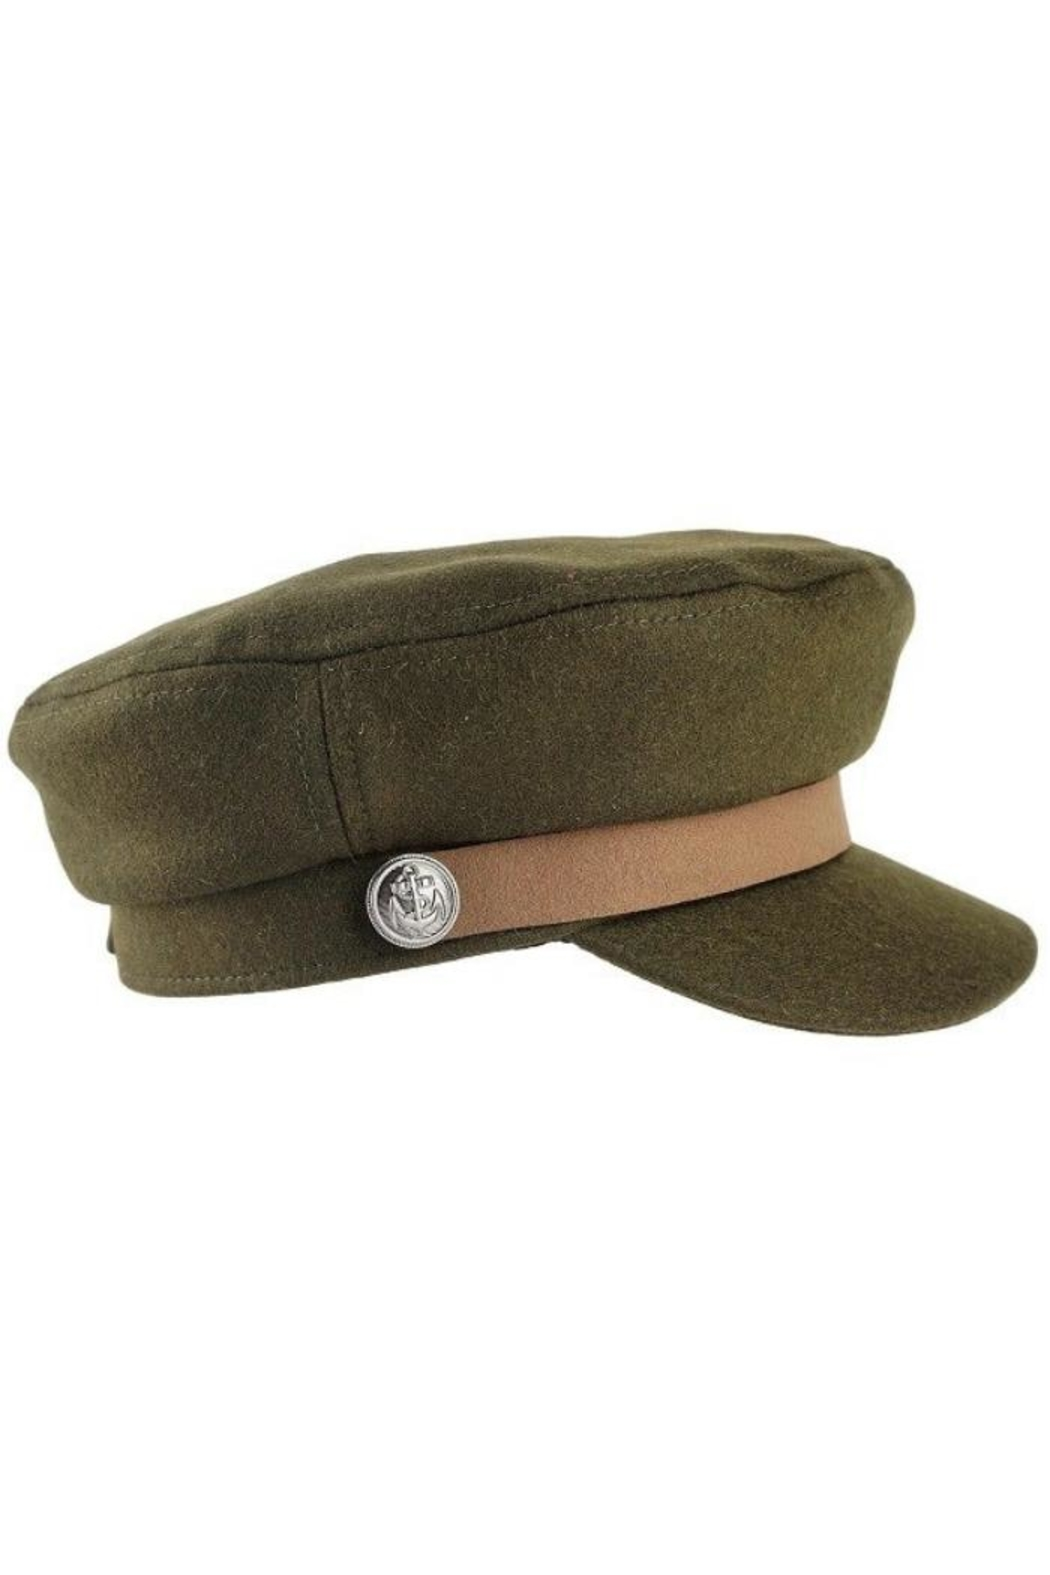 Olive & Pique Leather Trim Cap - Front Full Image